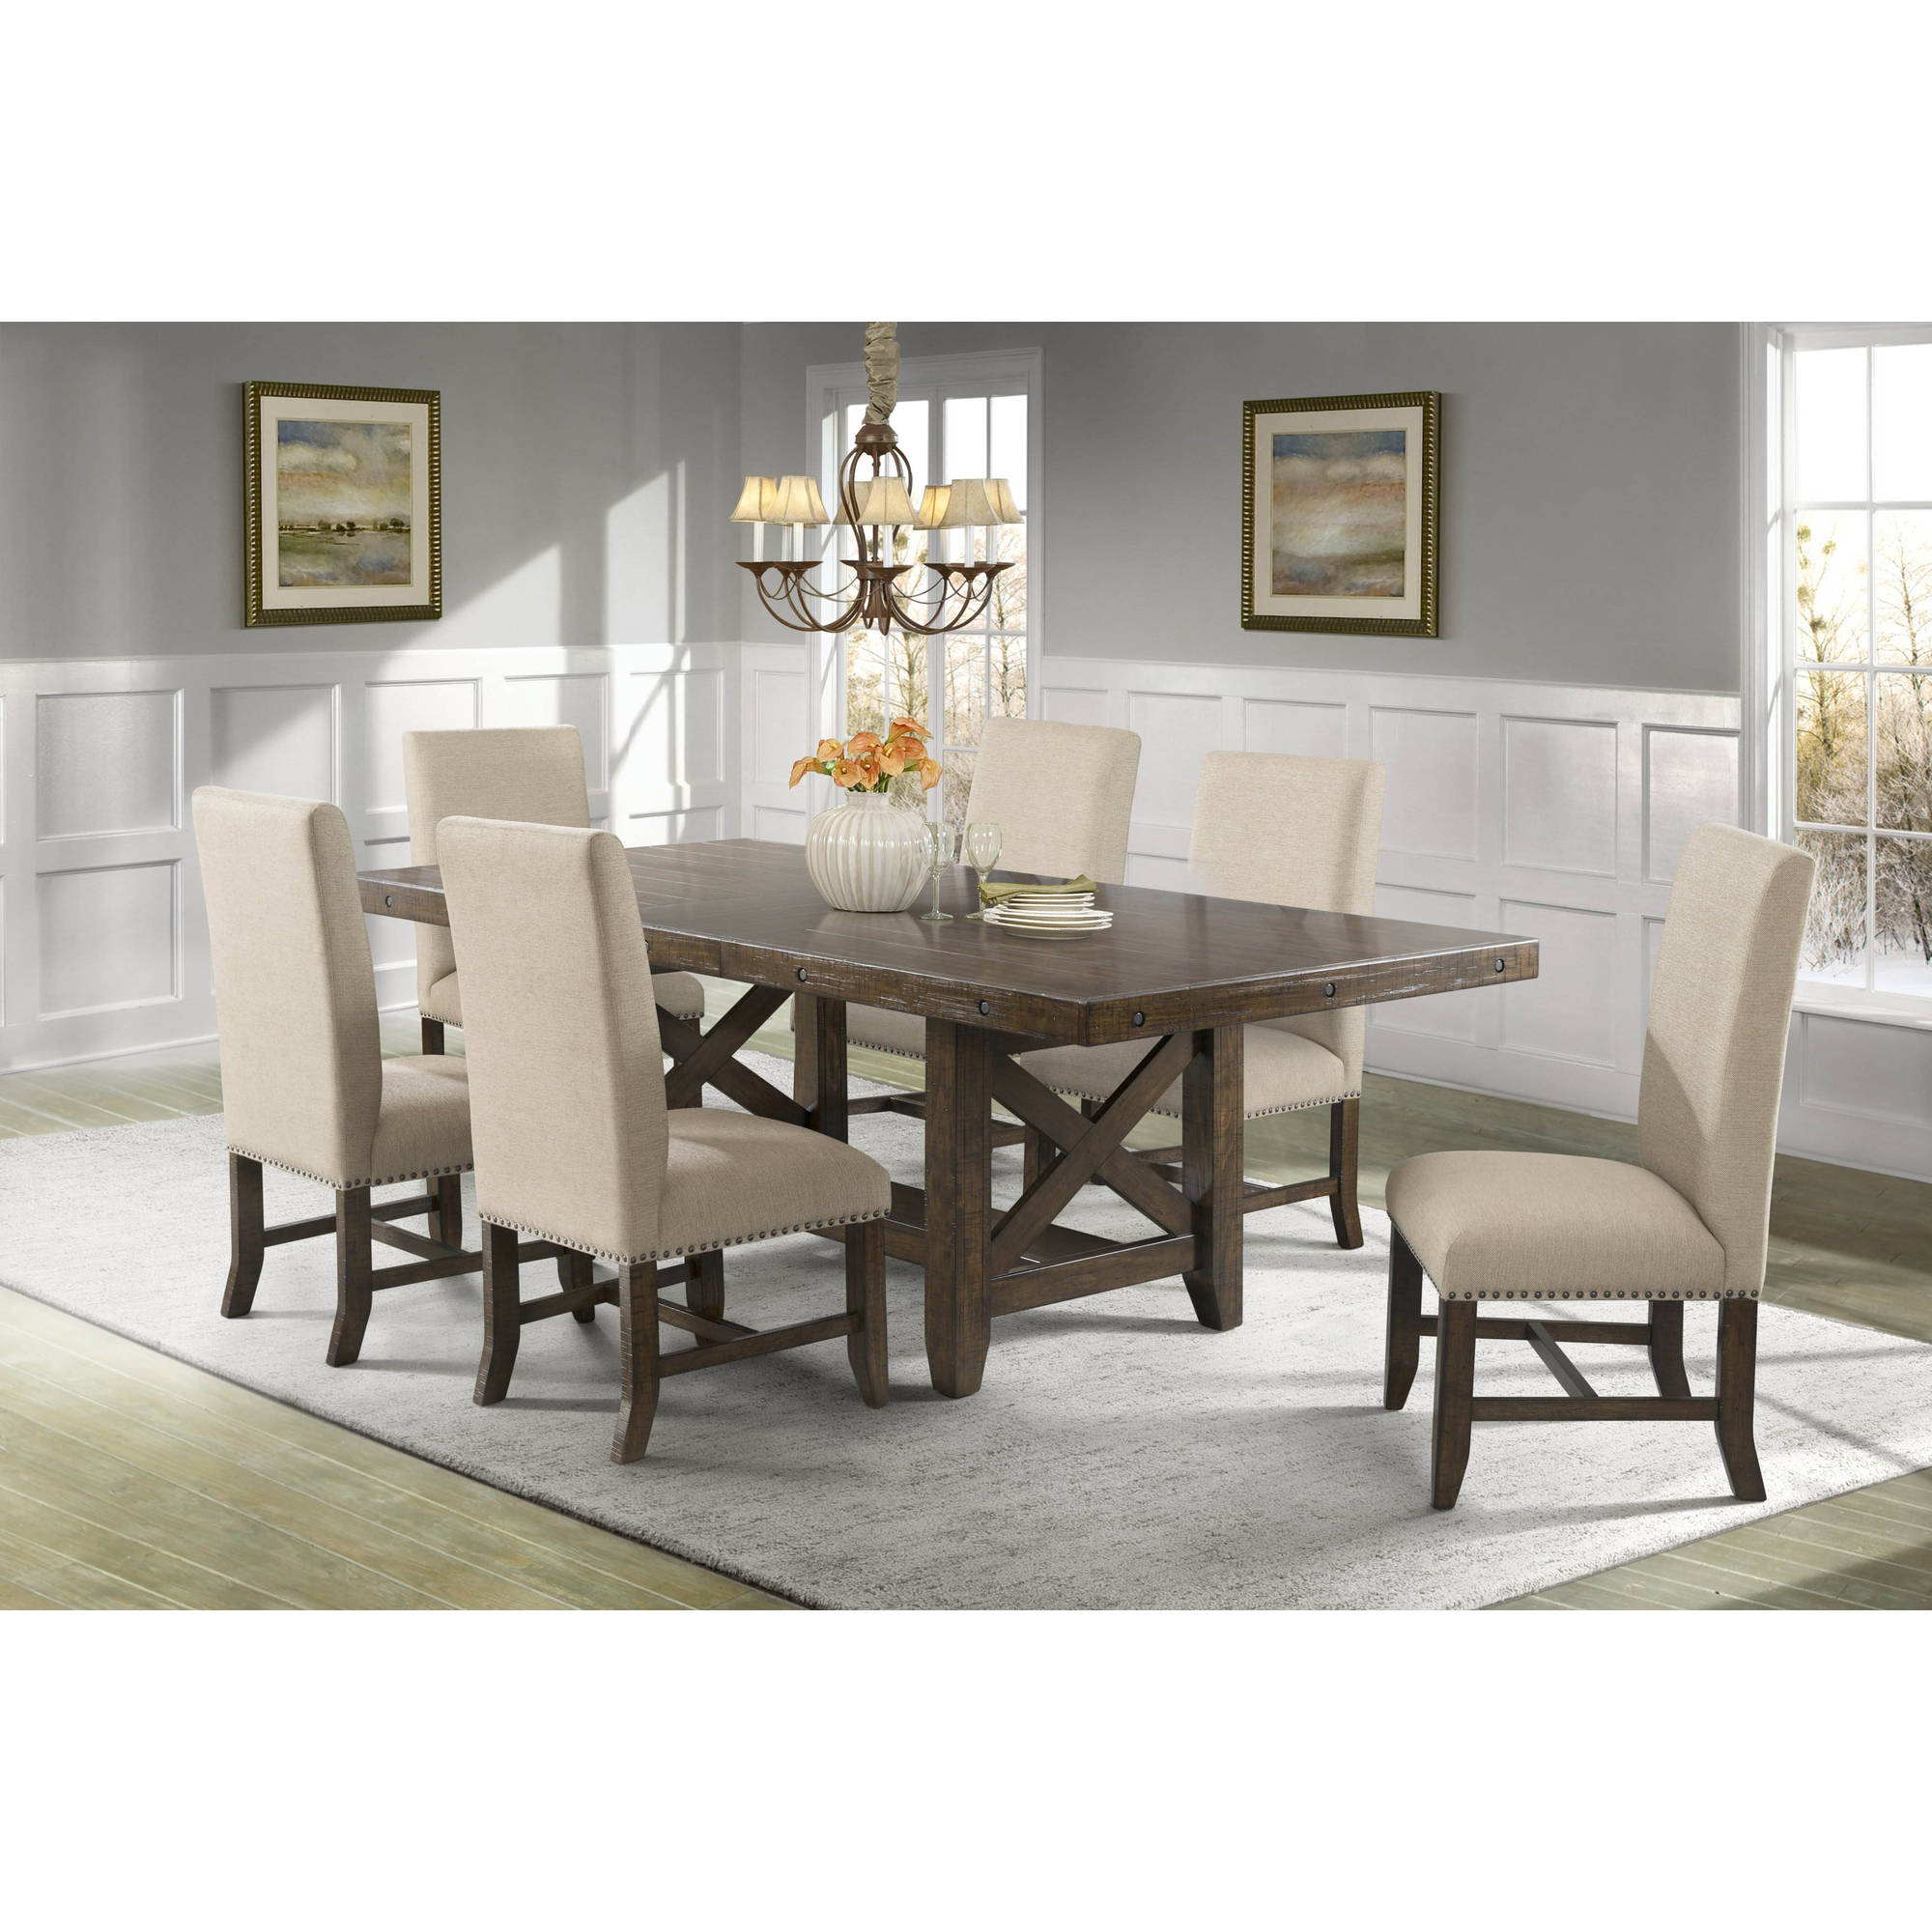 Picket House Furnishings Francis 7-Piece Dining Set-Table and 6 Fabric Side Chairs